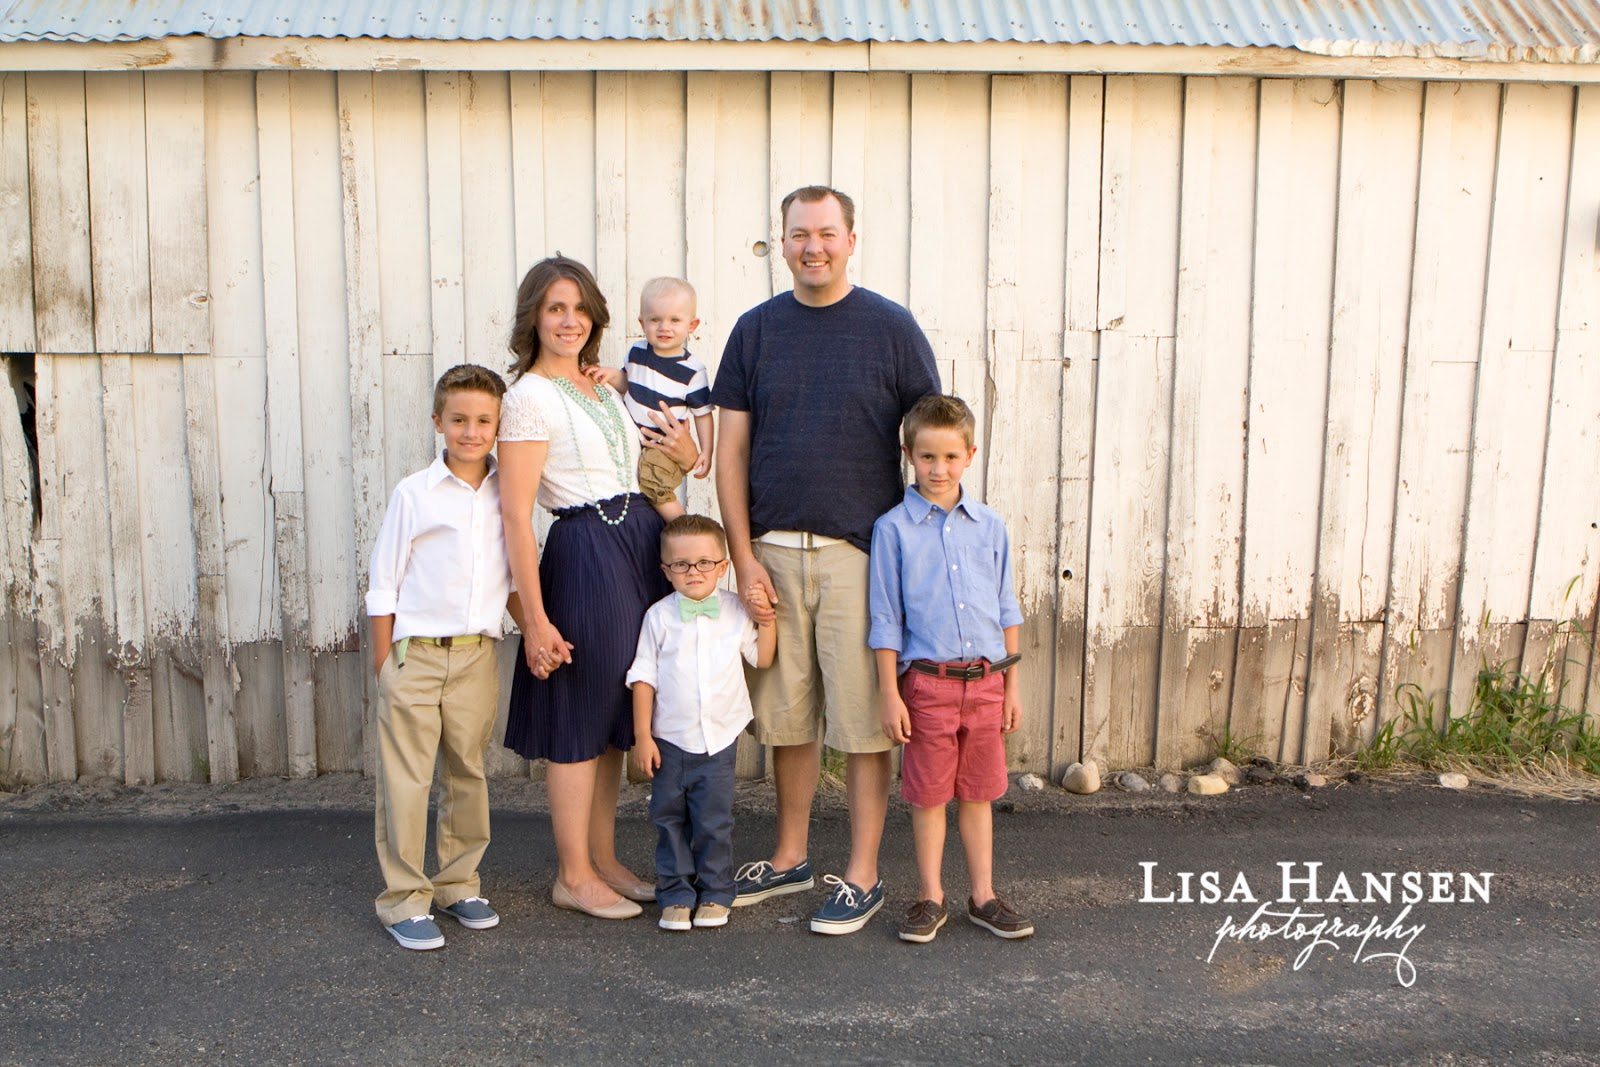 Larissa Another Day: Lisa Hansen Photography: Sharing Your Story and